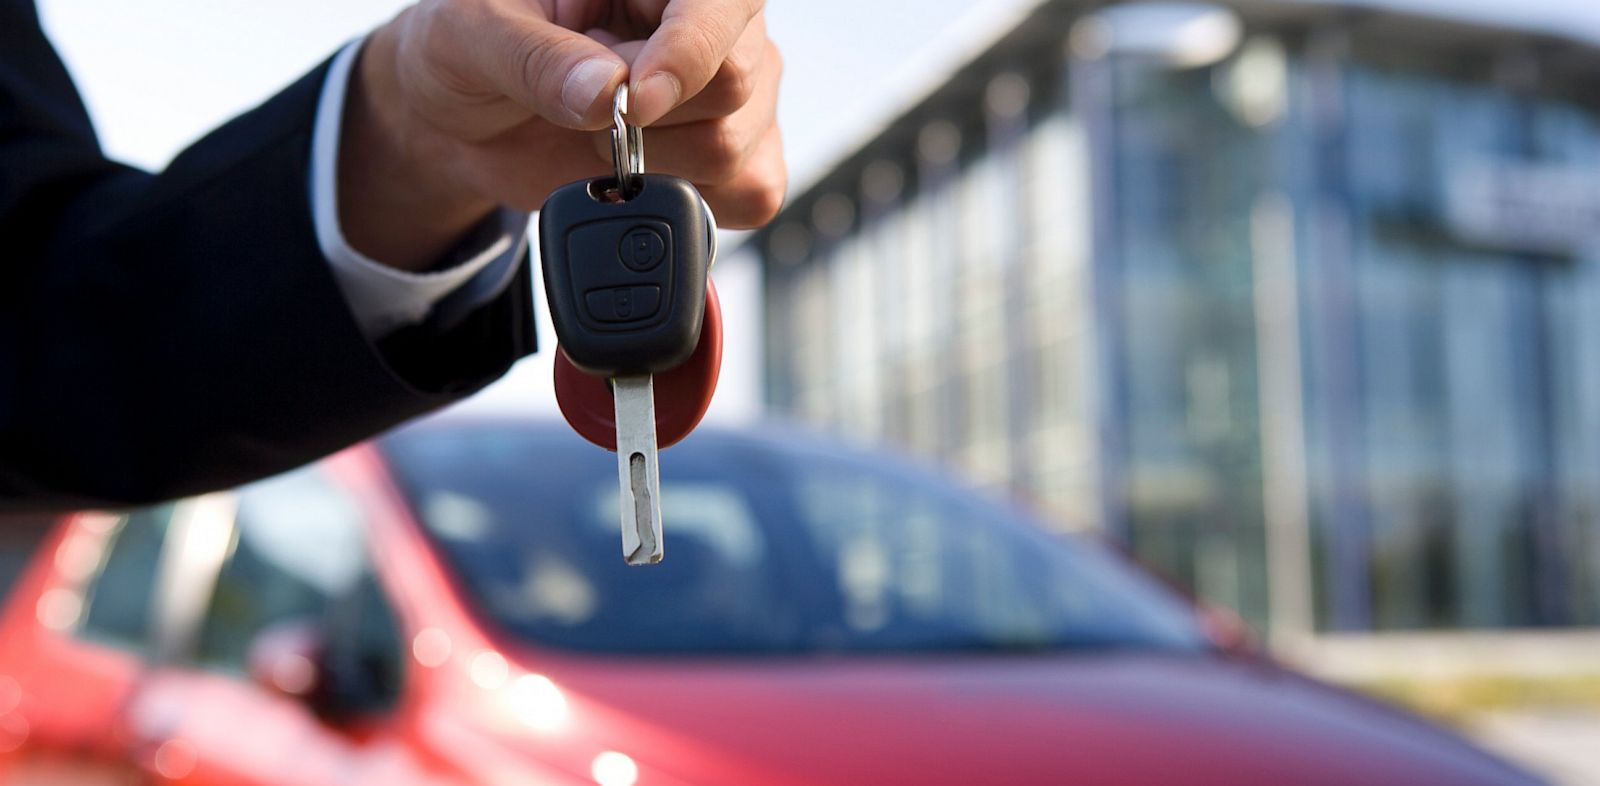 Study Finds Millenials Bust Gender Based Car-Shopping Stereotypes